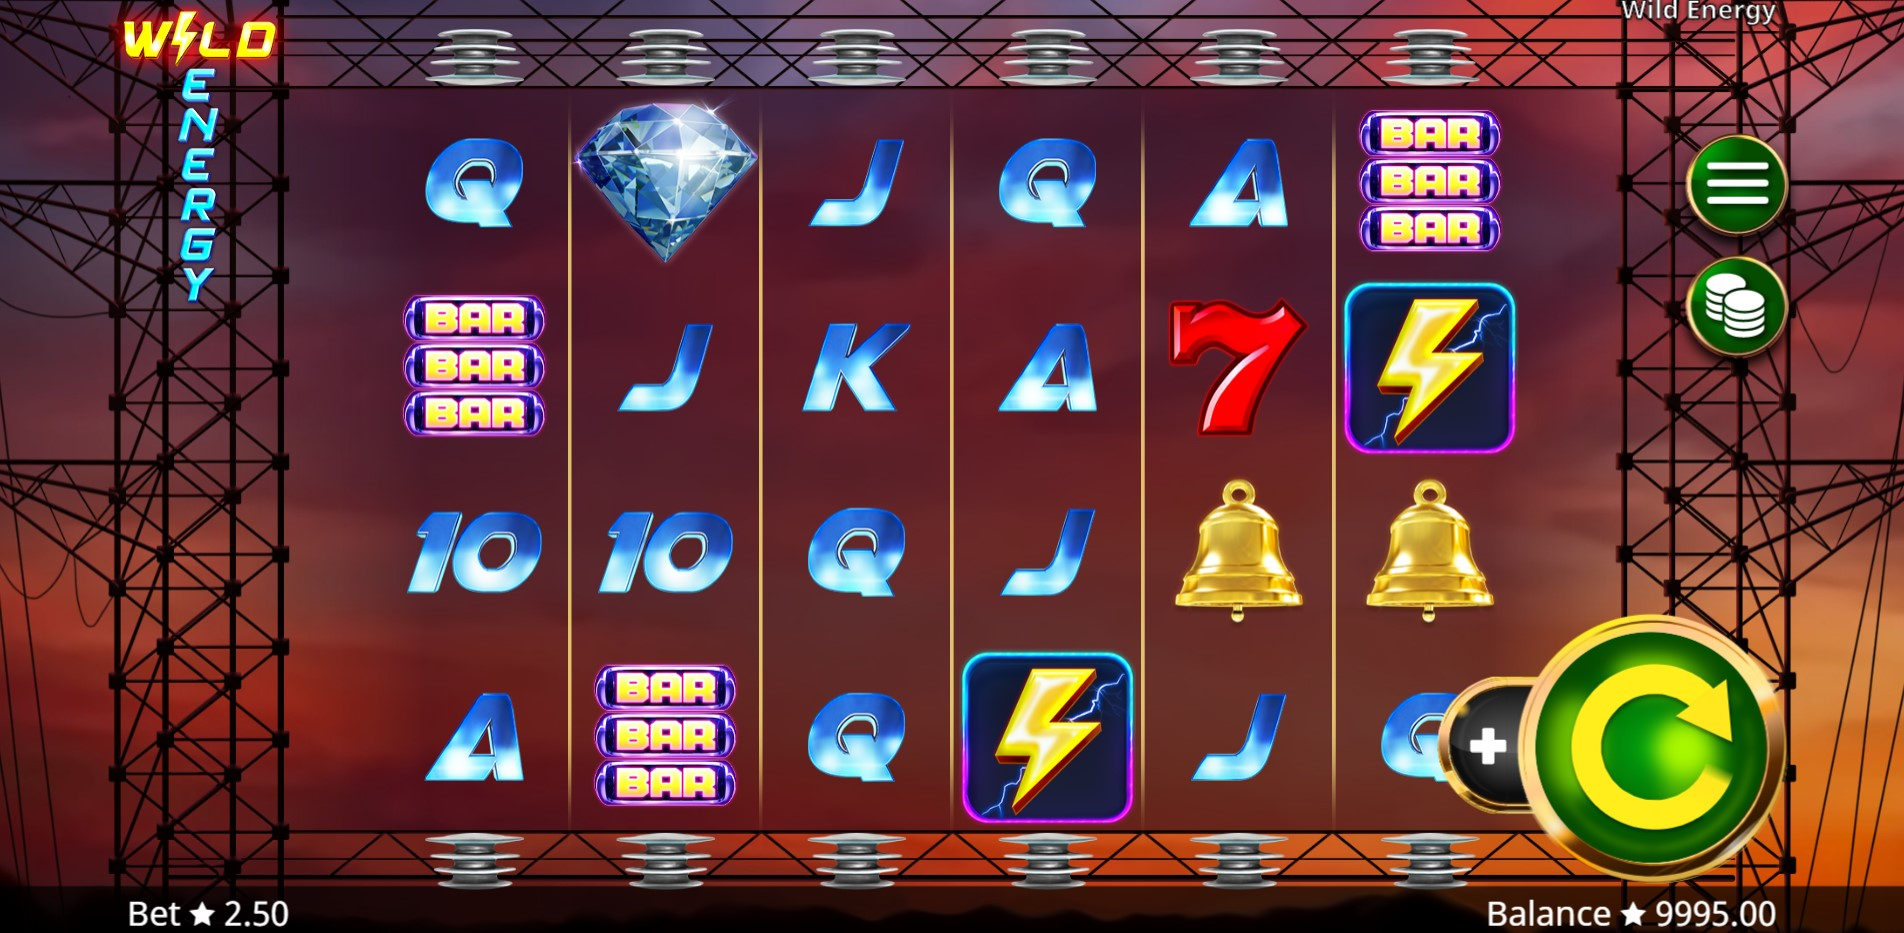 Wild Energy Slot Gameplay